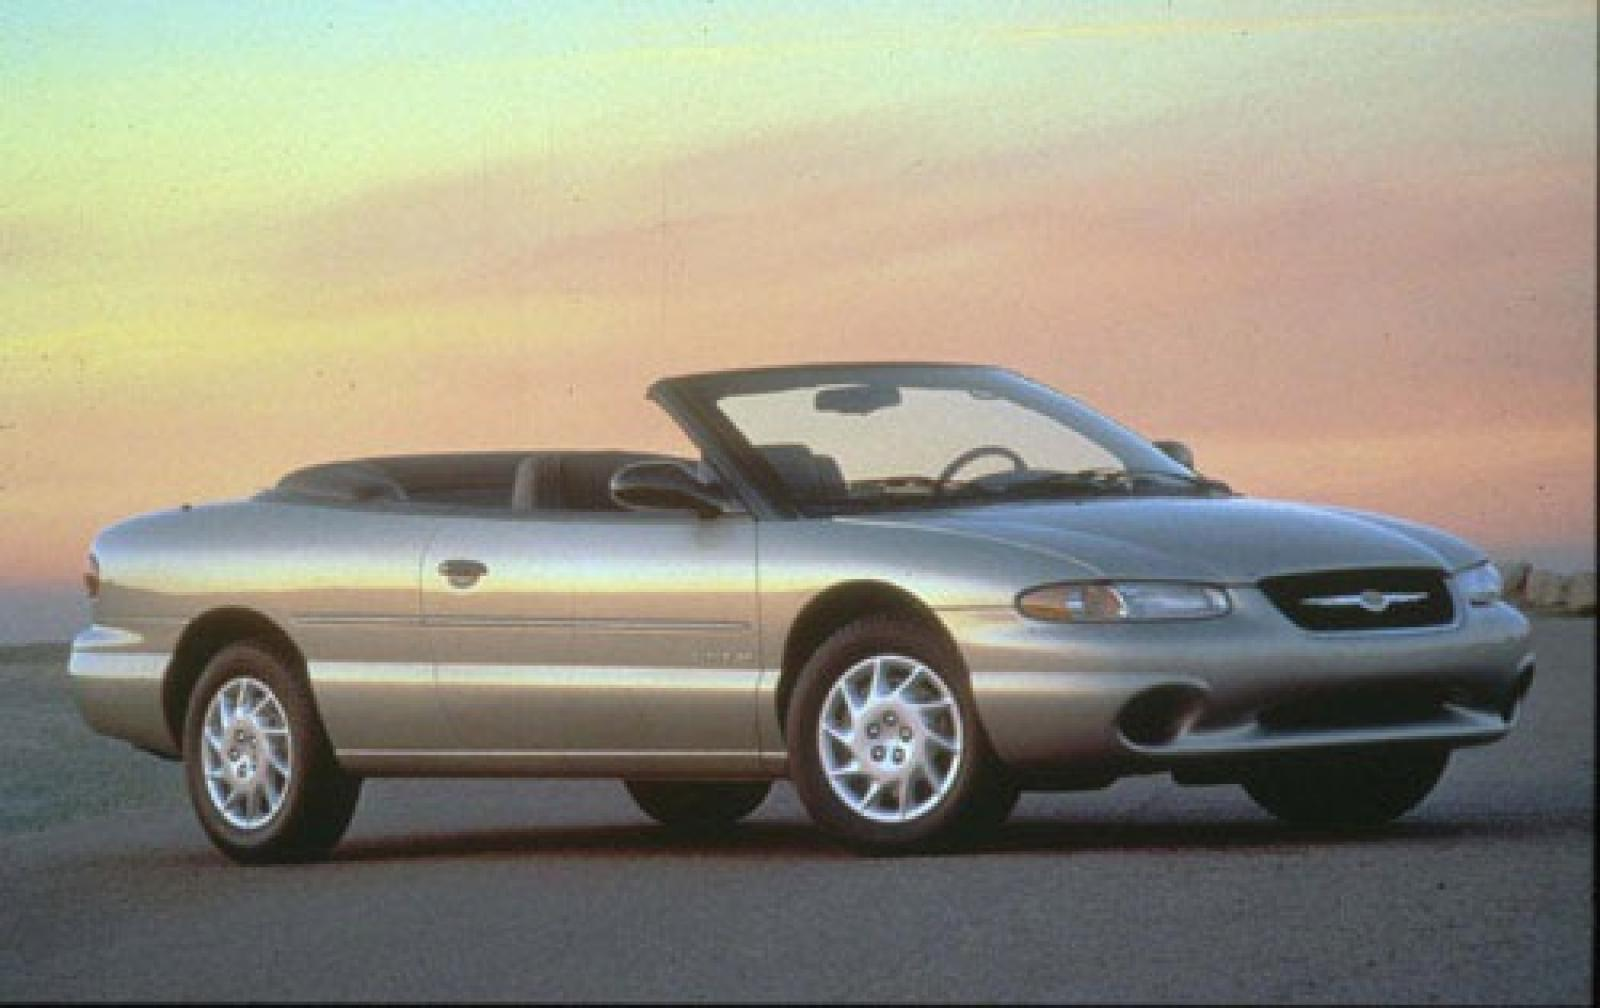 800 1024 1280 1600 origin 1999 Chrysler Sebring ...